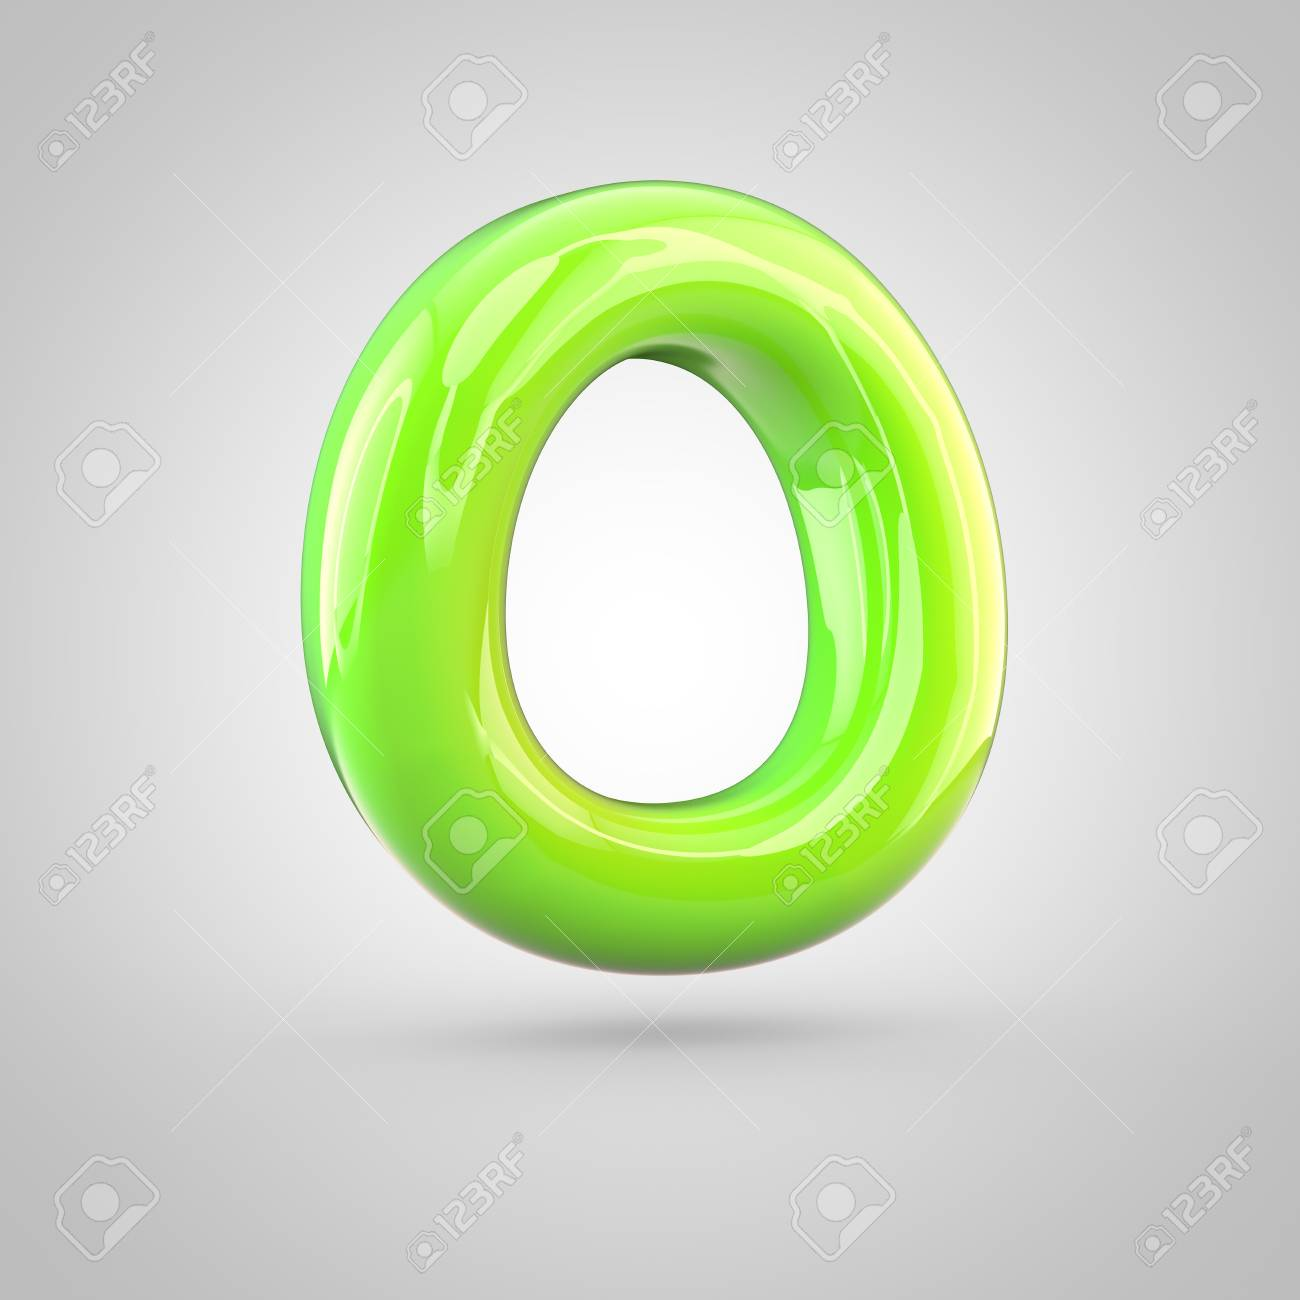 Glossy Lime Paint Alphabet Letter O Uppercase 3d Render Of Bubble